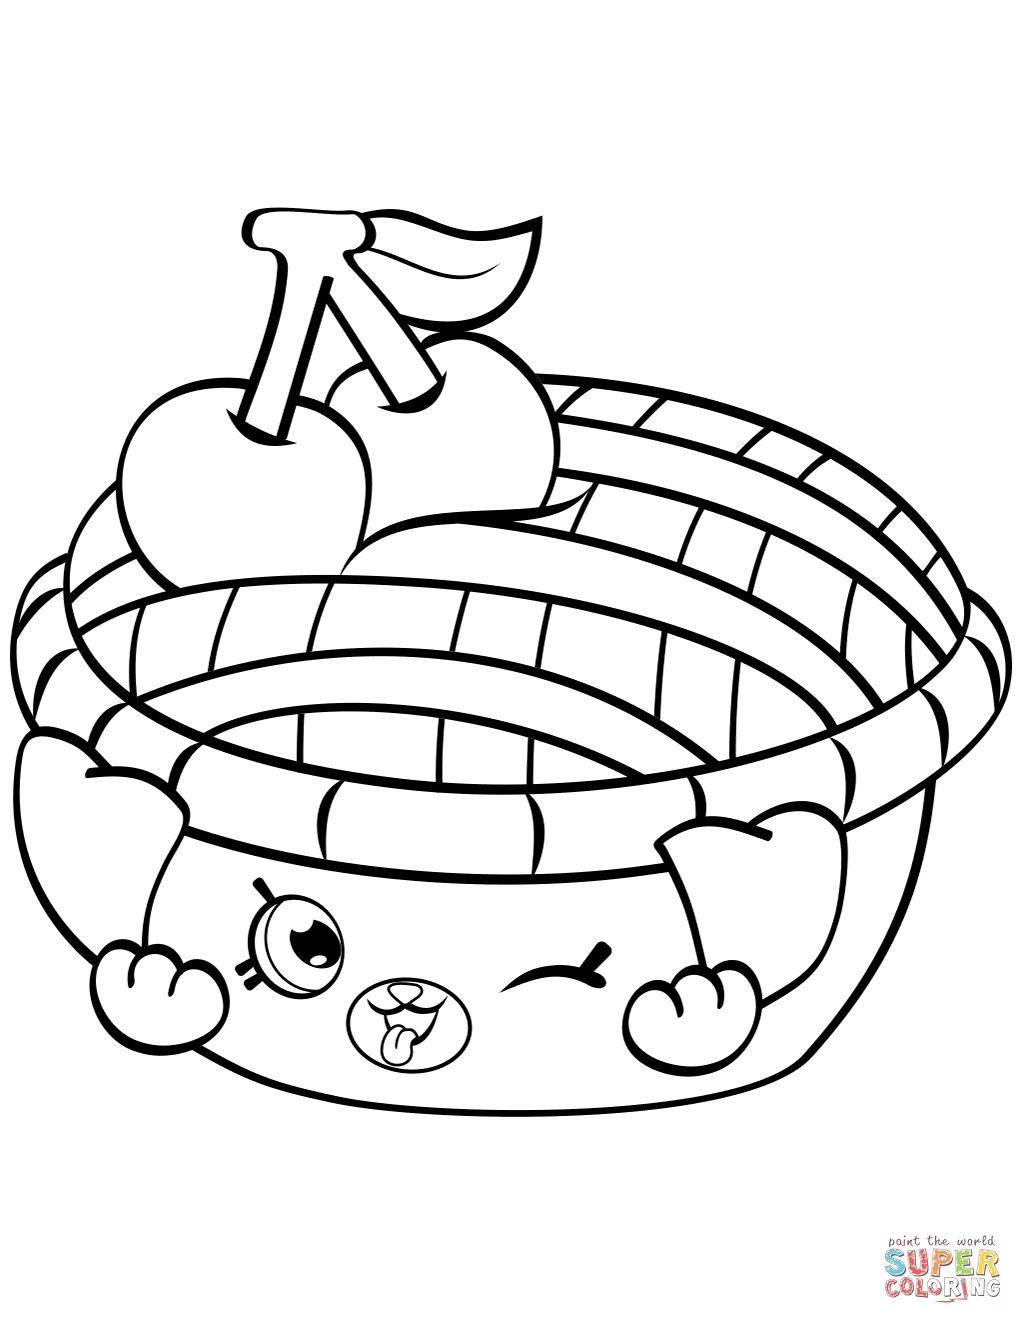 Shy Pie Shopkin coloring page   Free Printable Coloring Pages ...